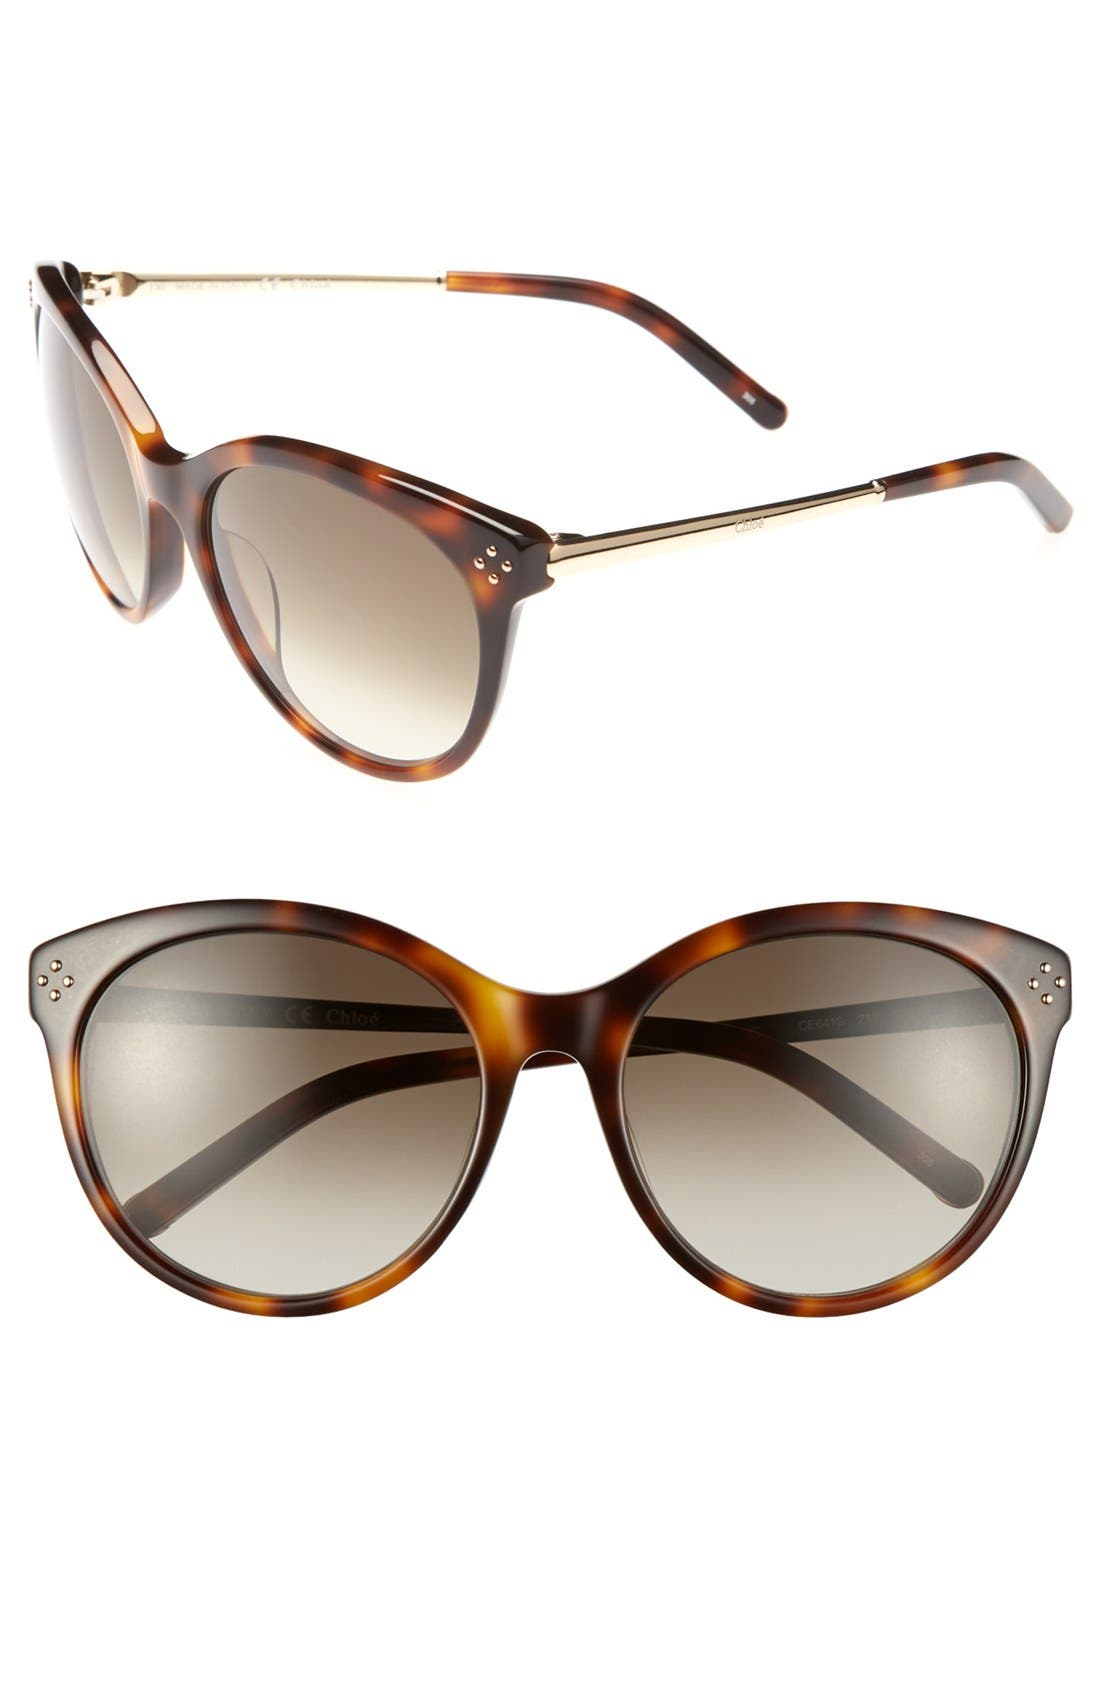 Alternate Image 1 Selected - Chloé 'Boxwood' 56mm Sunglasses